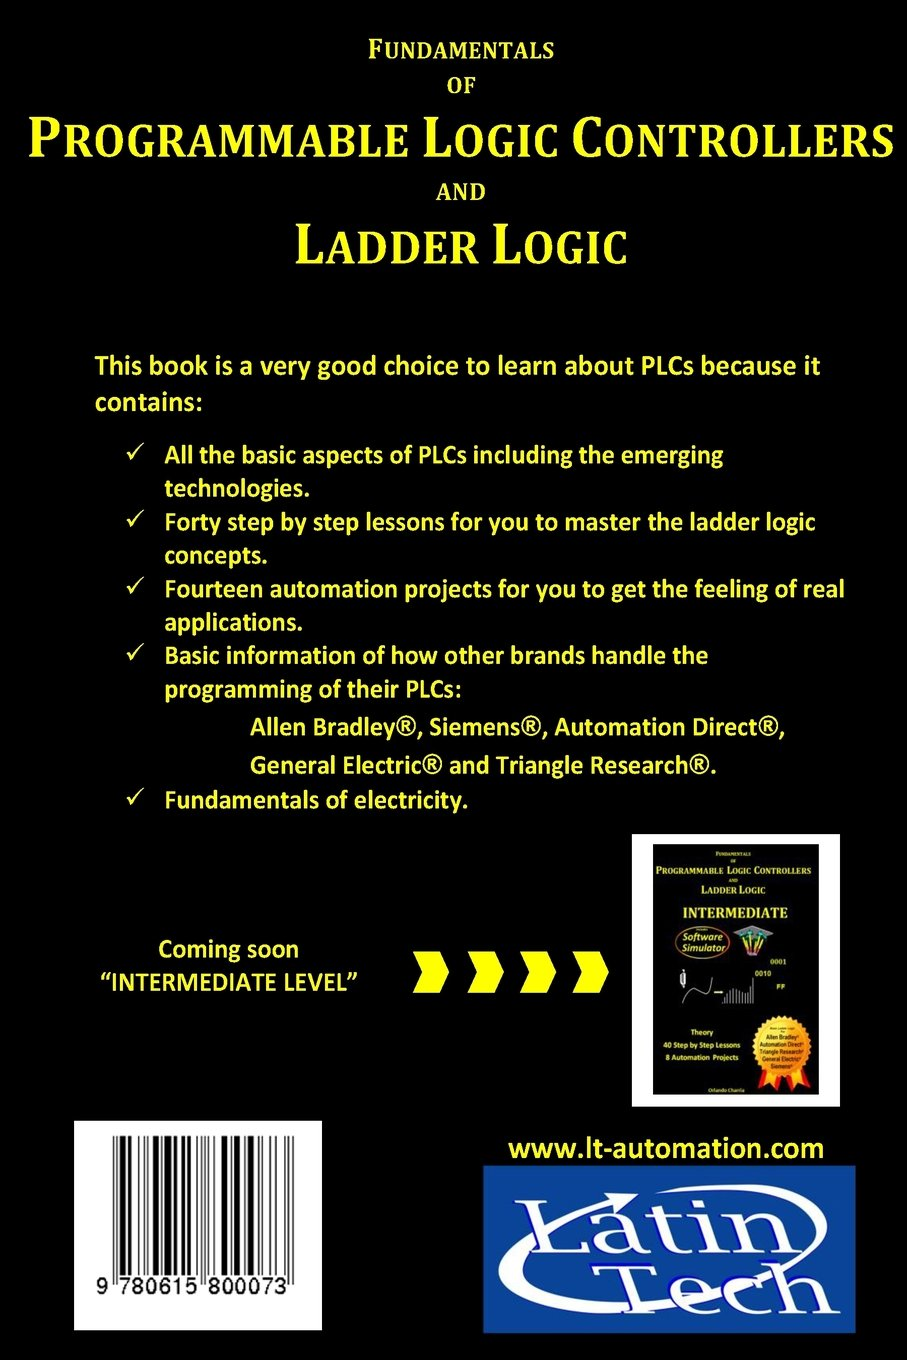 Fundamentals Of Programmable Logic Controllers And Ladder Relay Control Systems Volume 1 Orlando Charria 9780615800073 Books